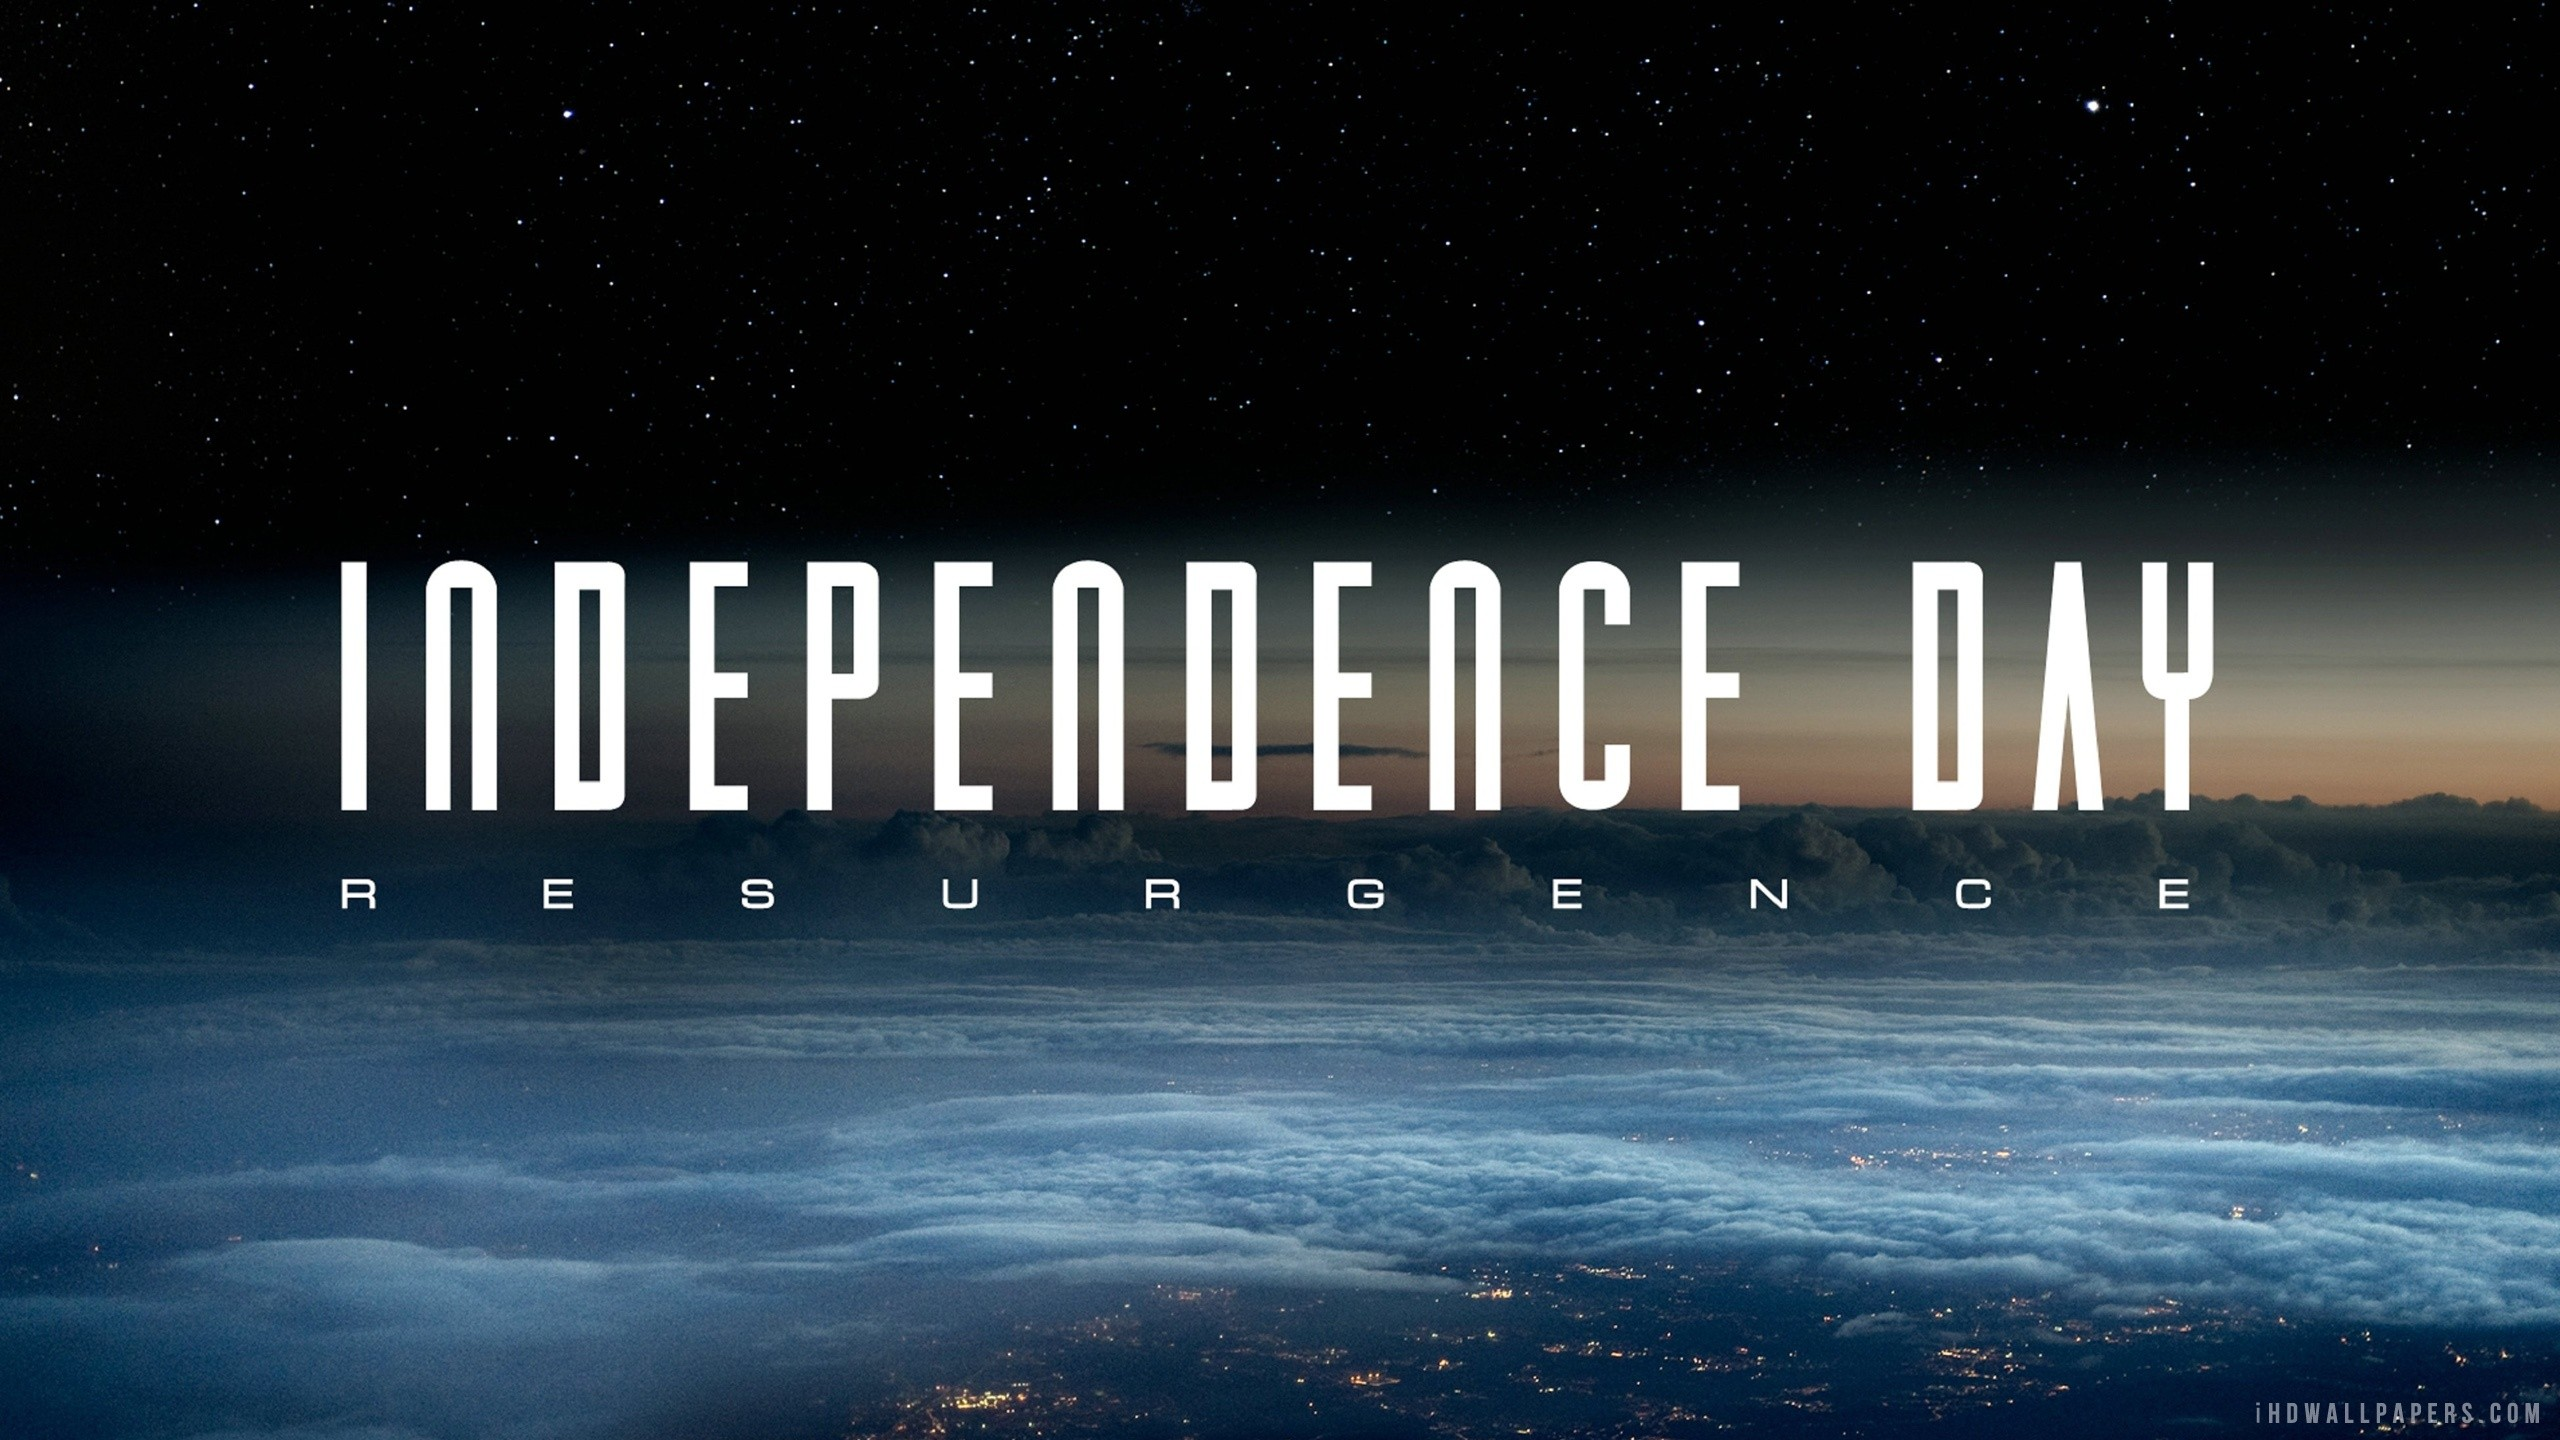 Independence Day Resurgence Movie Wallpaper   The Wallpaper 2560x1440